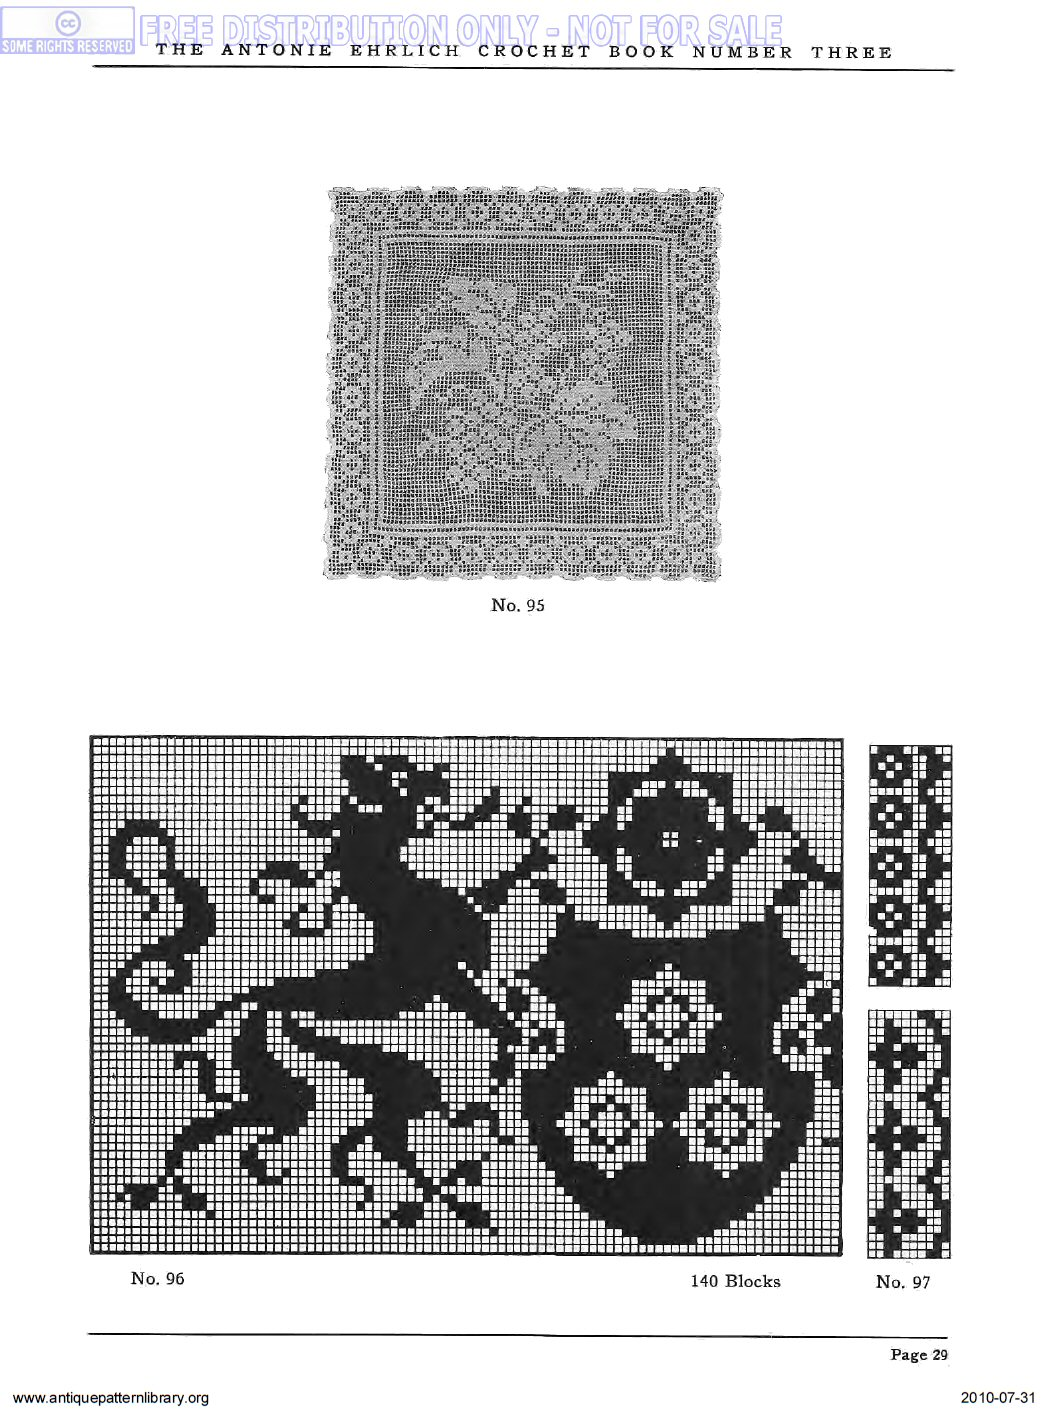 B-AH001 Antonie Ehrlich Crochet Book No. 3: